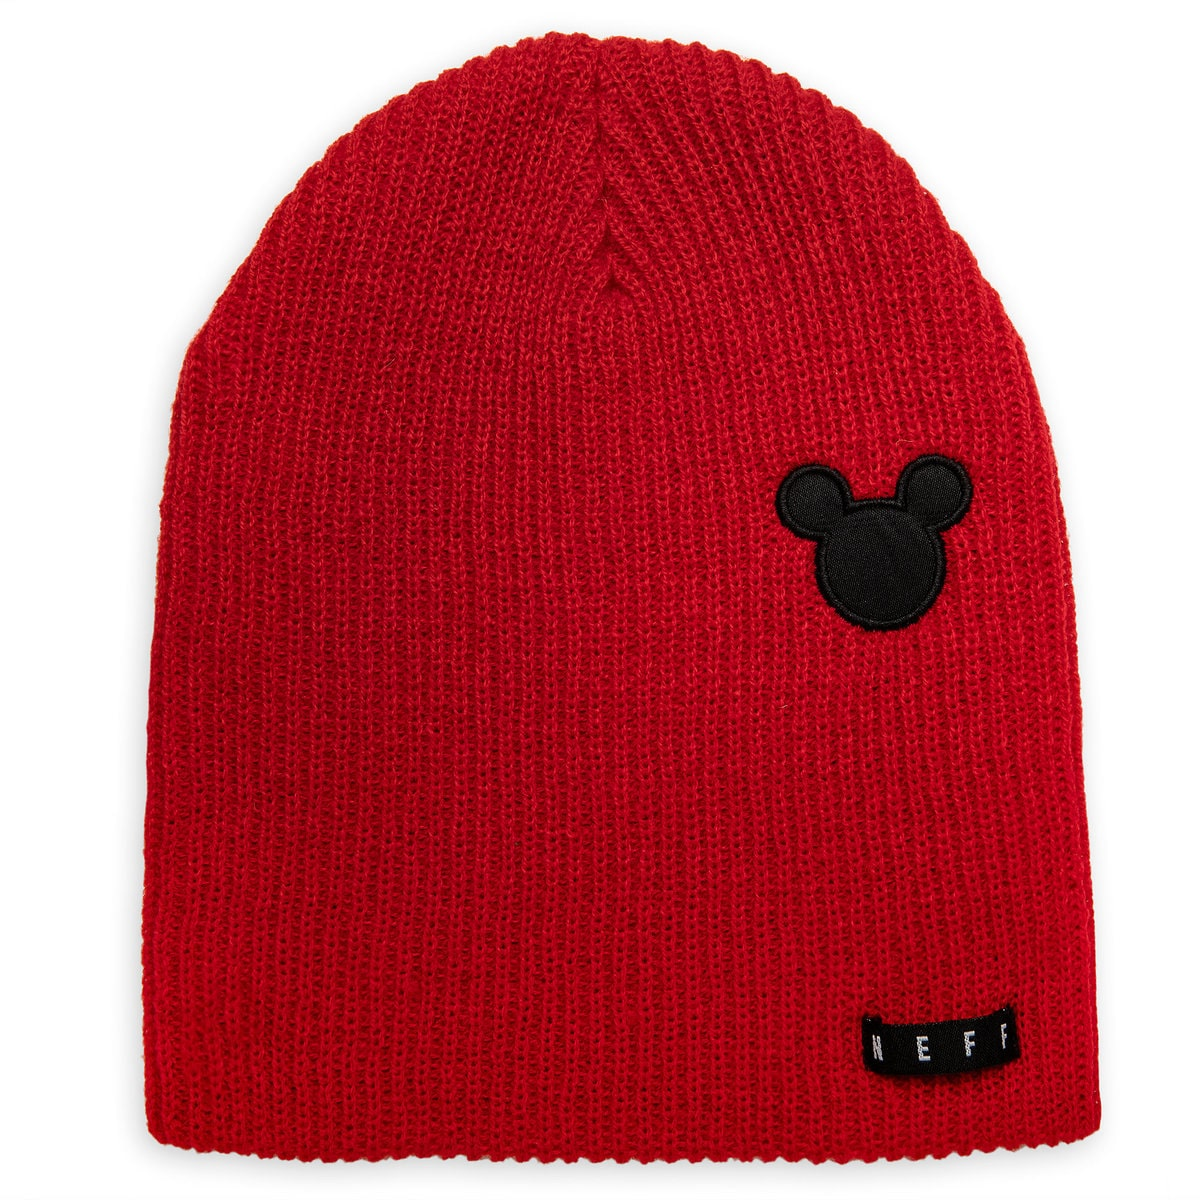 9fd39d1b3ff Product Image of Mickey Mouse Beanie for Adults by Neff - Red   1